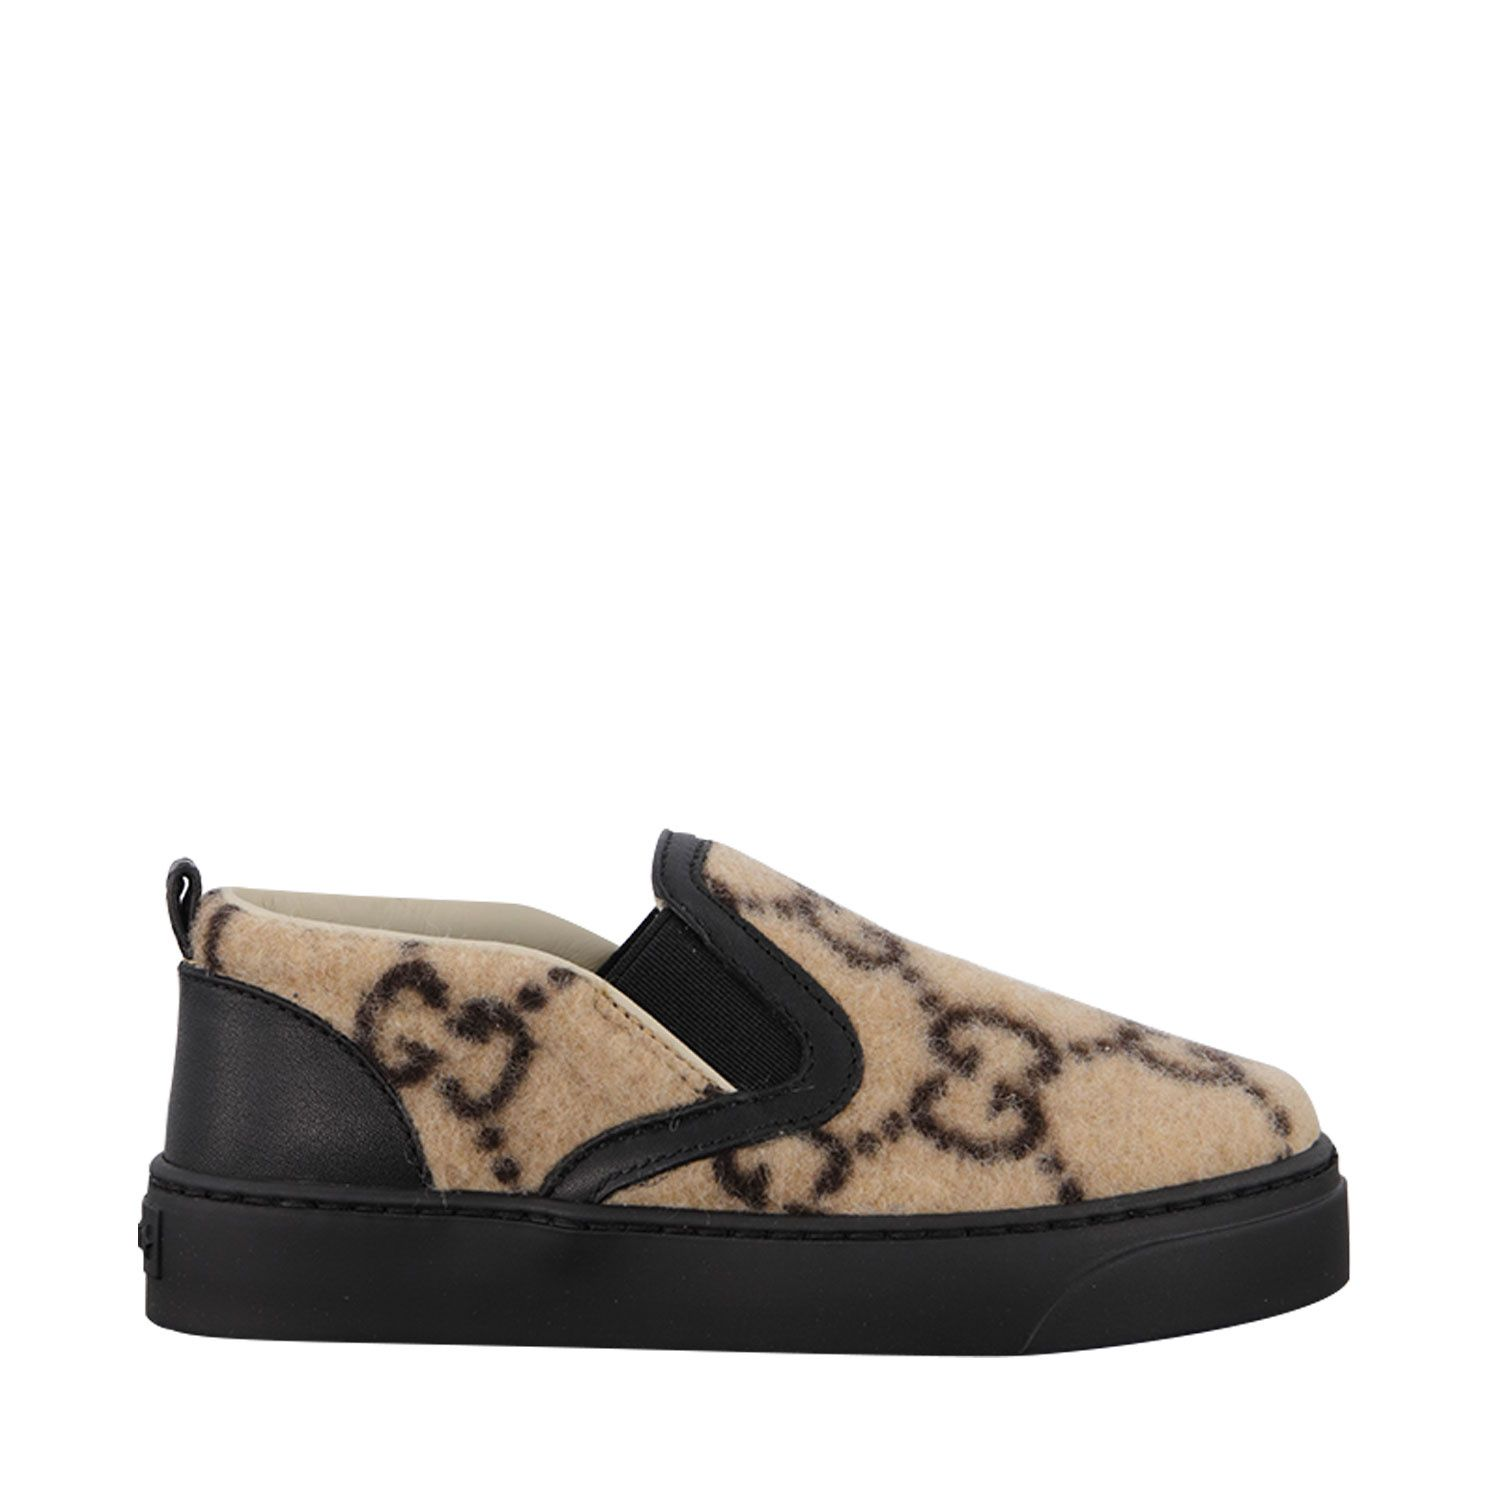 Picture of Gucci 580842 kids sneakers beige